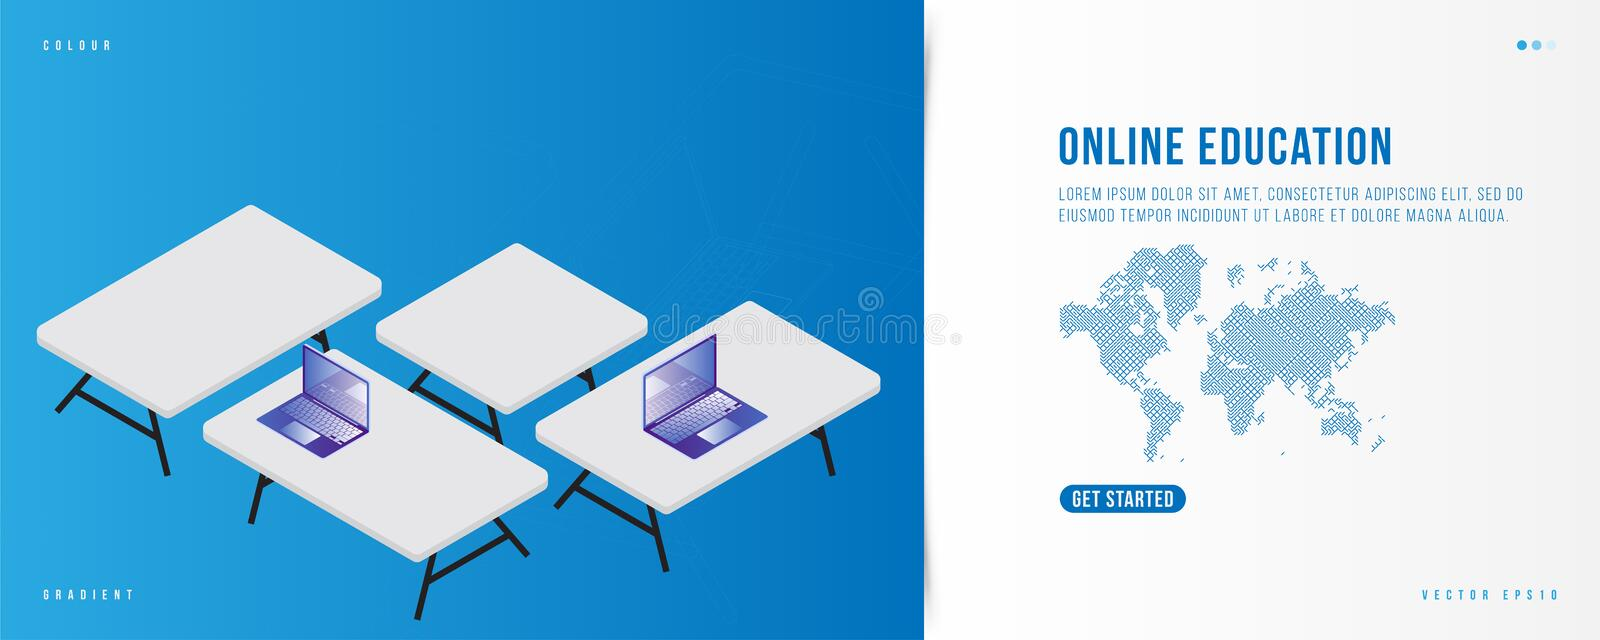 Banner Online Education. Landing Page design template for web site with Icon technology world map on the background. Laptops in isometric style on the table stock illustration